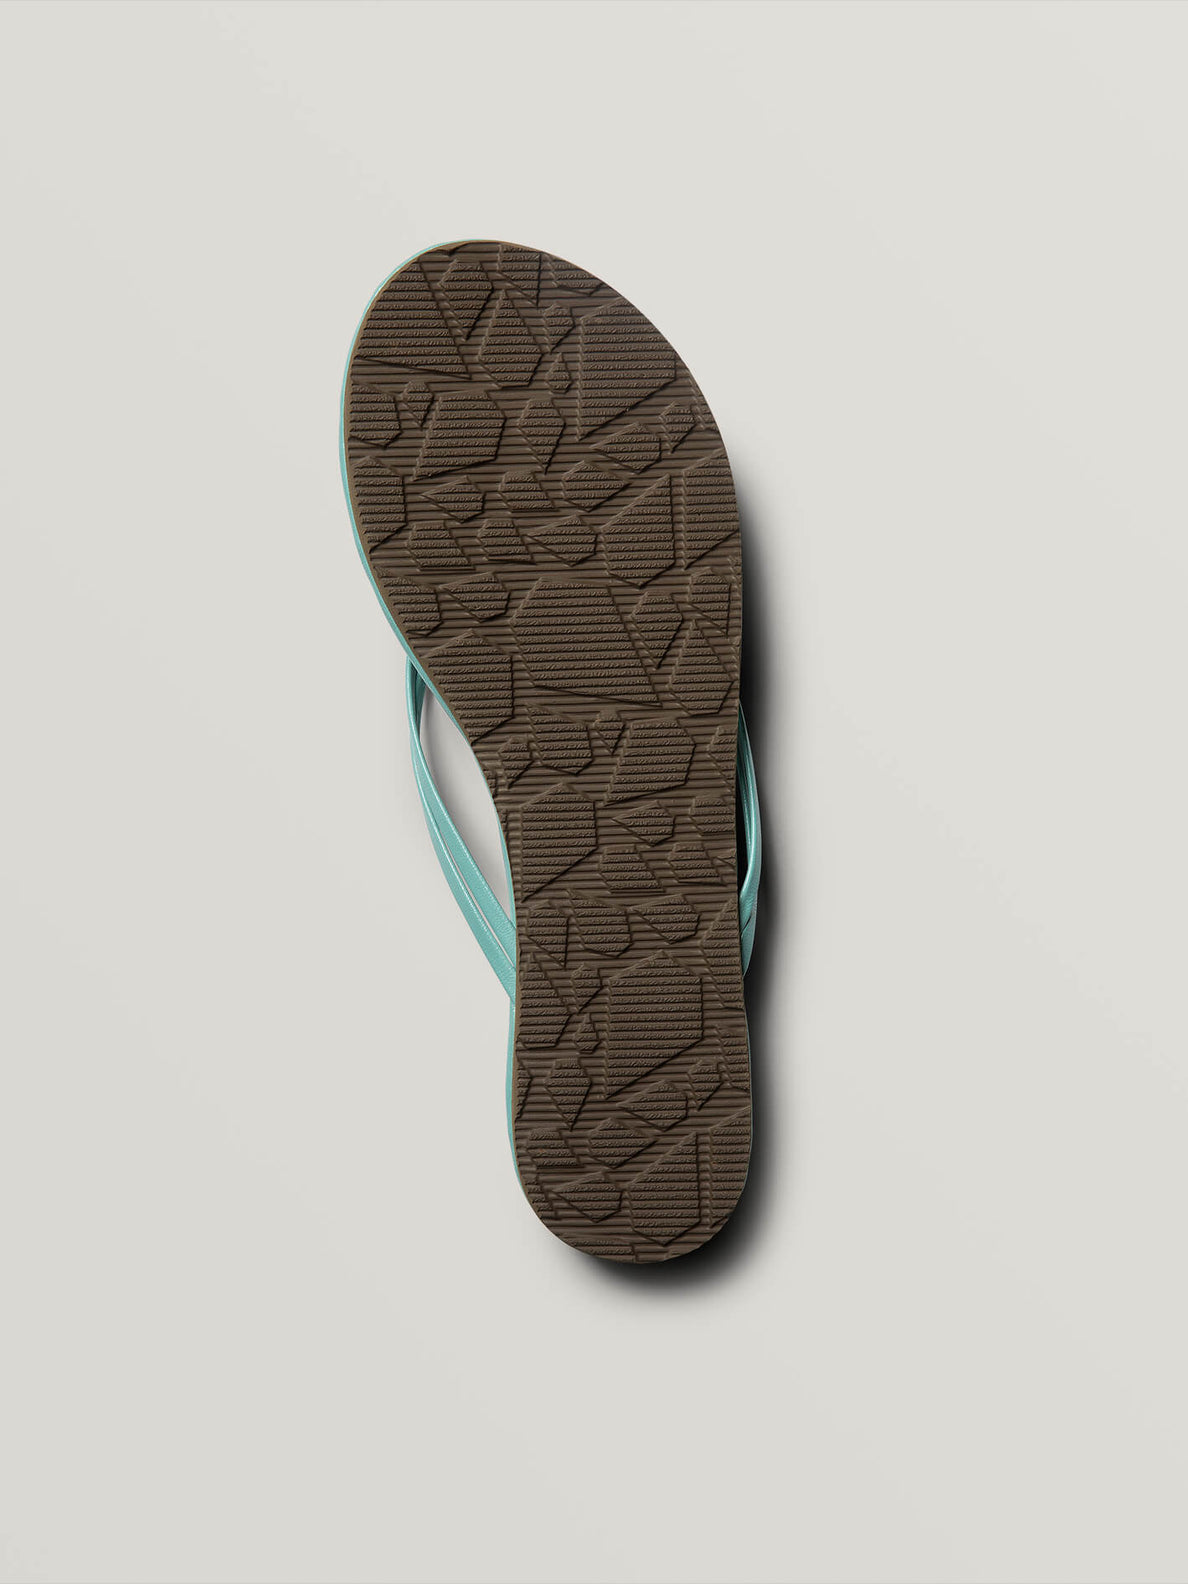 Wrapped Up Sandals In Dusty Aqua, Second Alternate View